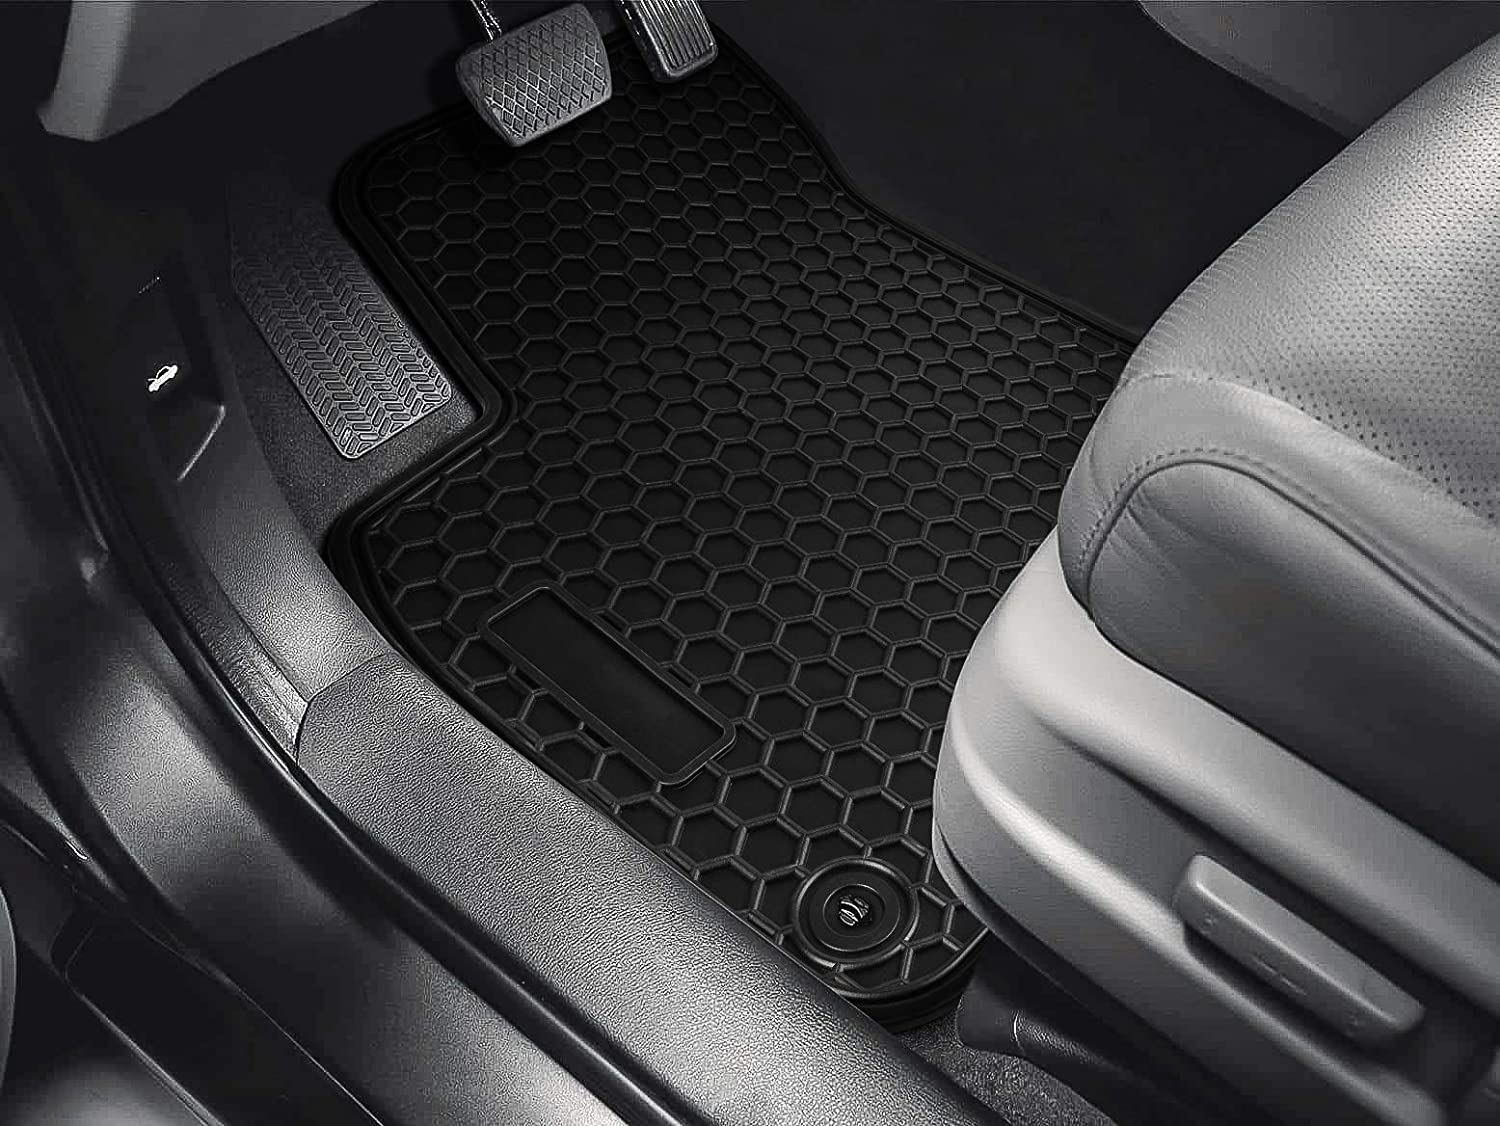 Danti Rubber Floor Mats Floor Liners Mat for BMW 3 Series 2012-2018 /& 2015 All Weather Protection F80 M3 Waterproof Custom Fit